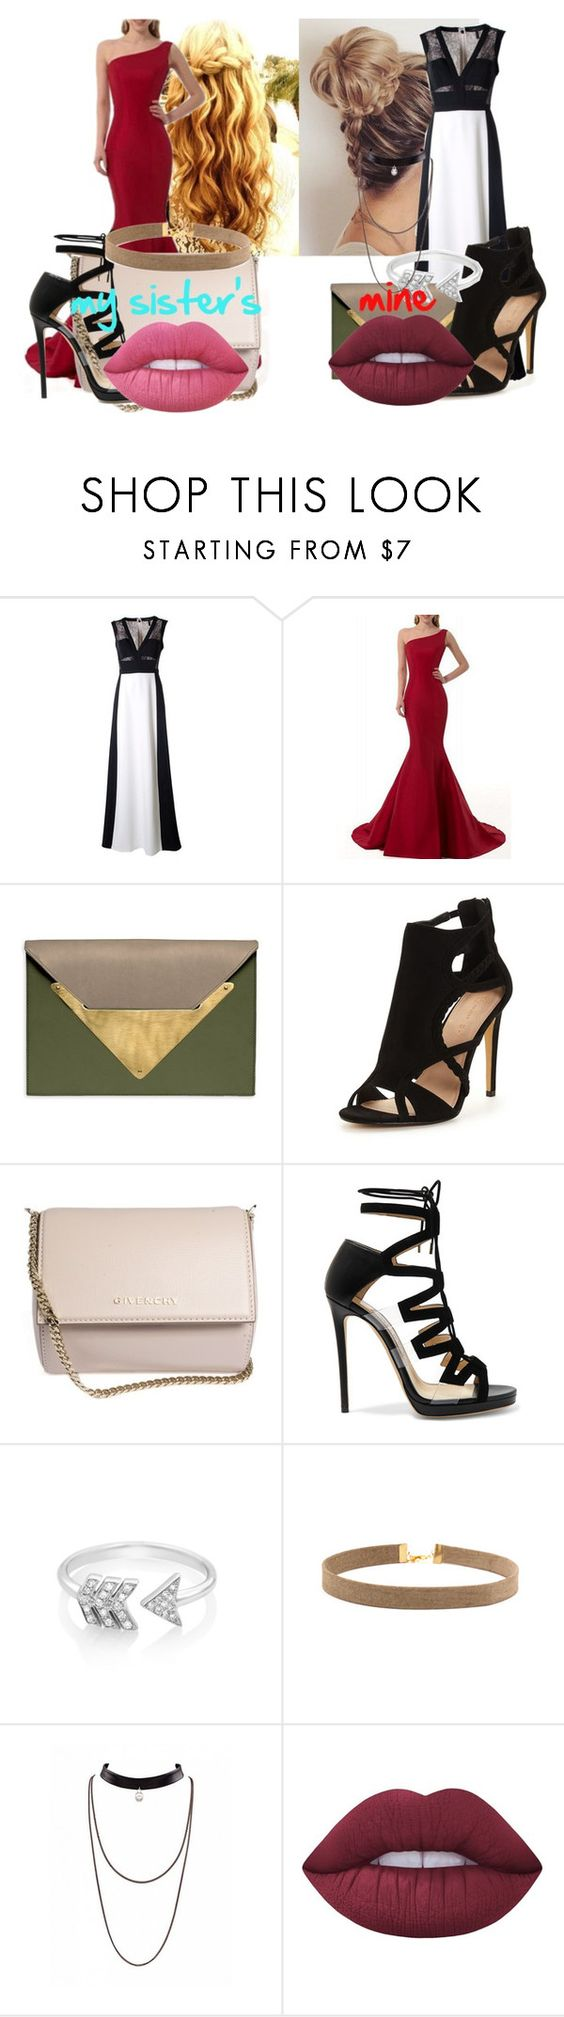 """mine and my sister's style prom outfits"" by lozzydutton01 ❤ liked on Polyvore featuring BCBGMAXAZRIA, Dareen Hakim, Givenchy, Jimmy Choo, EF Collection and Lime Crime"